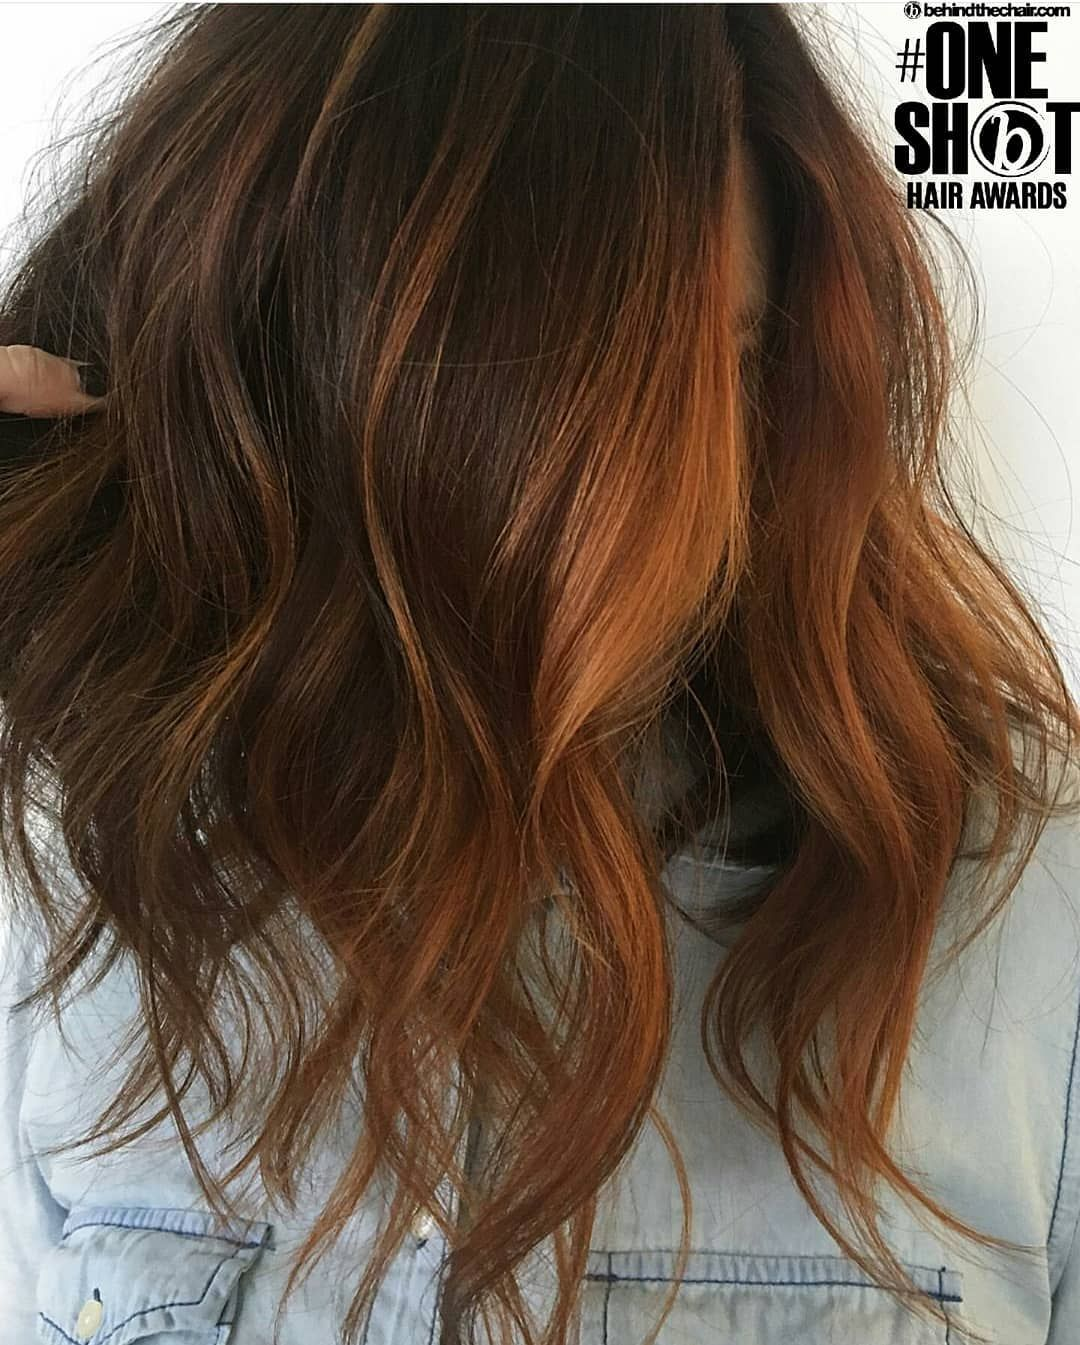 C O P P E R Penny For Your Thoughts Leave Your Thoughts Below By Brit Bellasalonandboutique Btcbrit Bellasalonandboutique